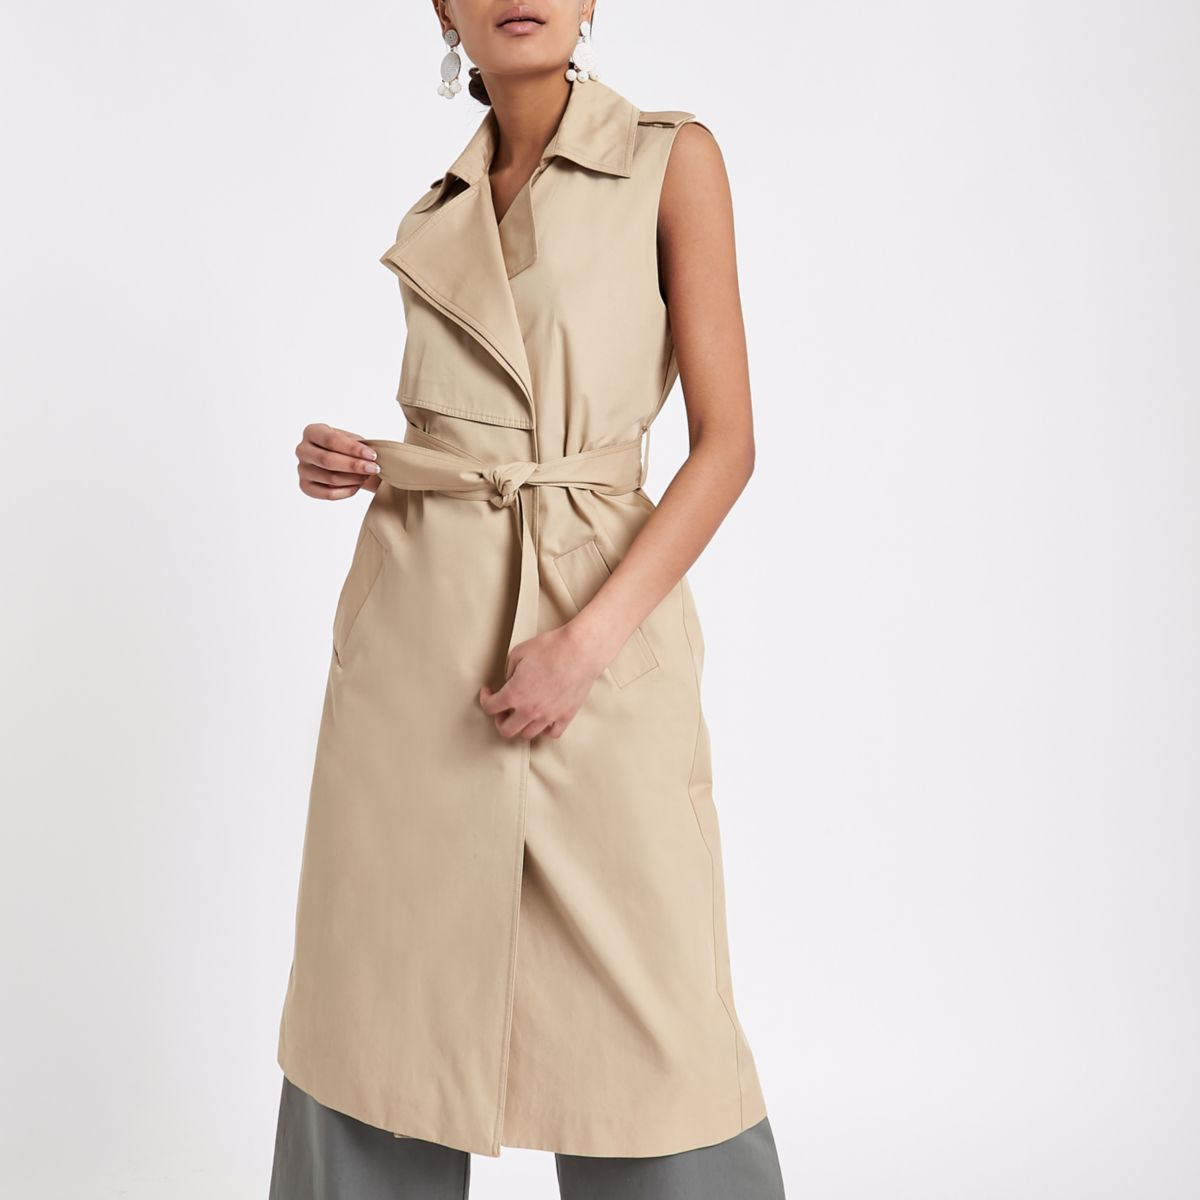 Beige sleeveless belted trench coat